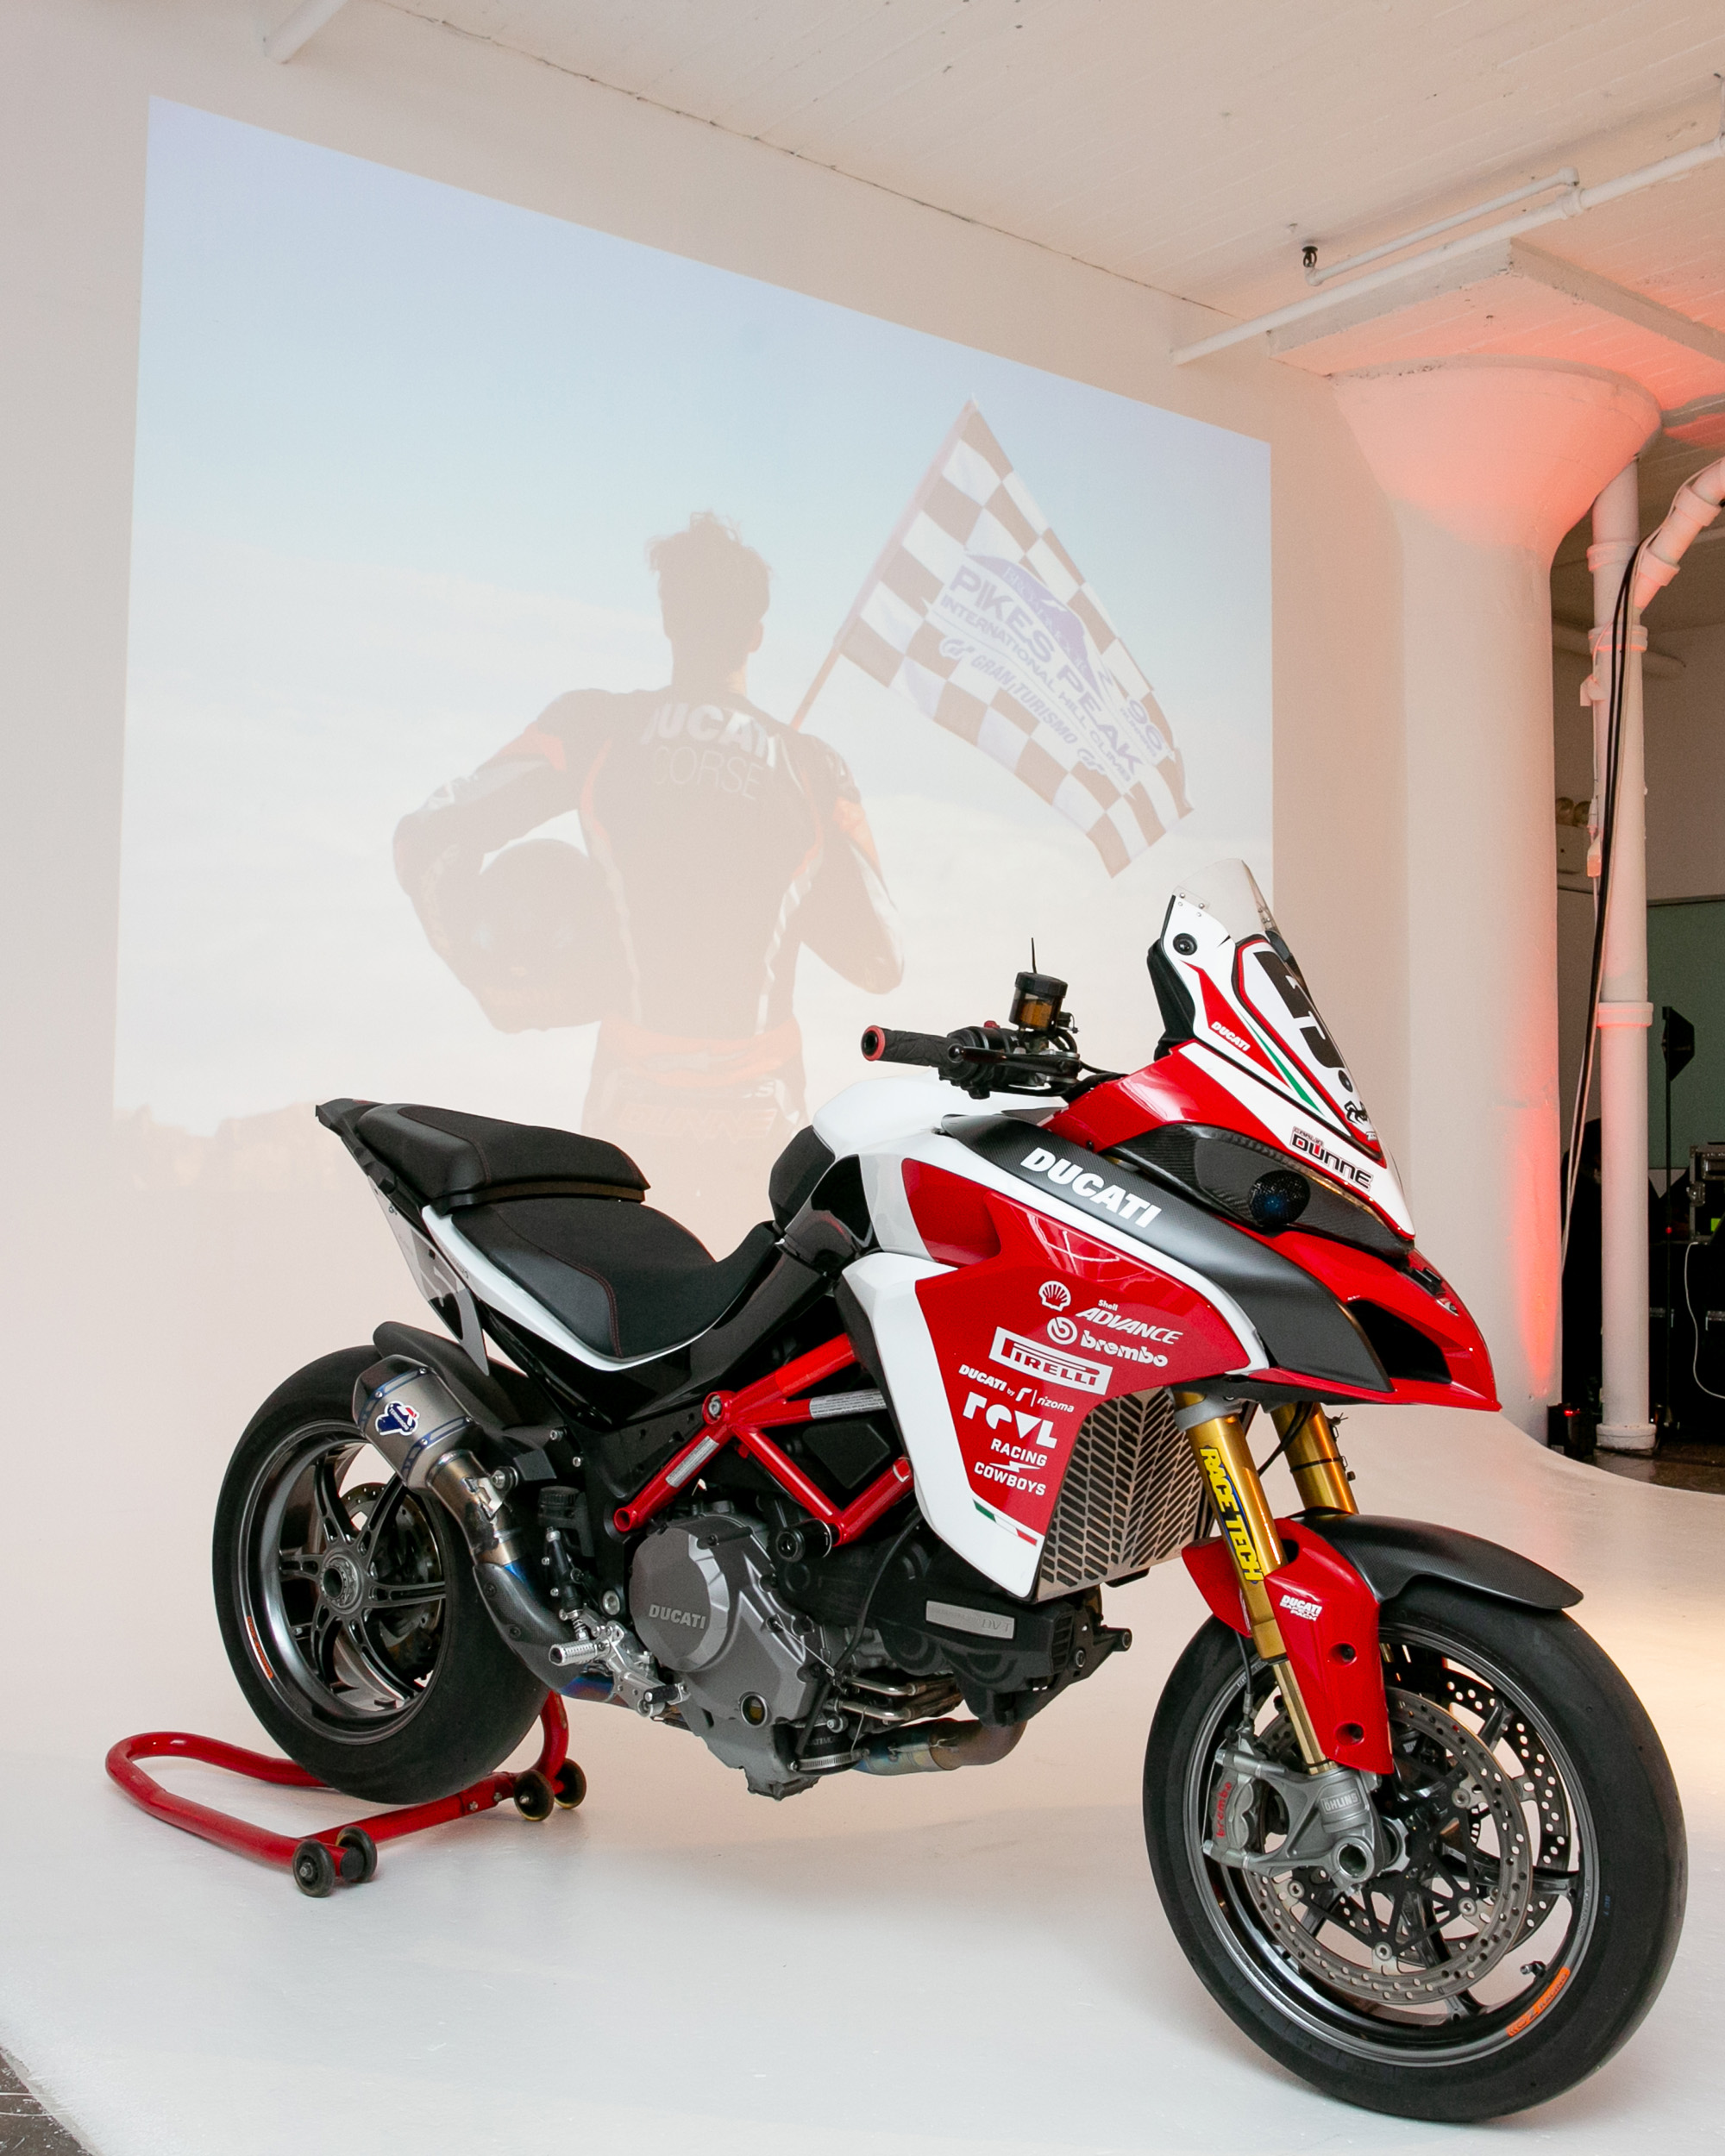 191210 Ducati North America Raises Funds for Carlin Dunne Foundation With Successful Charity Auction [4]